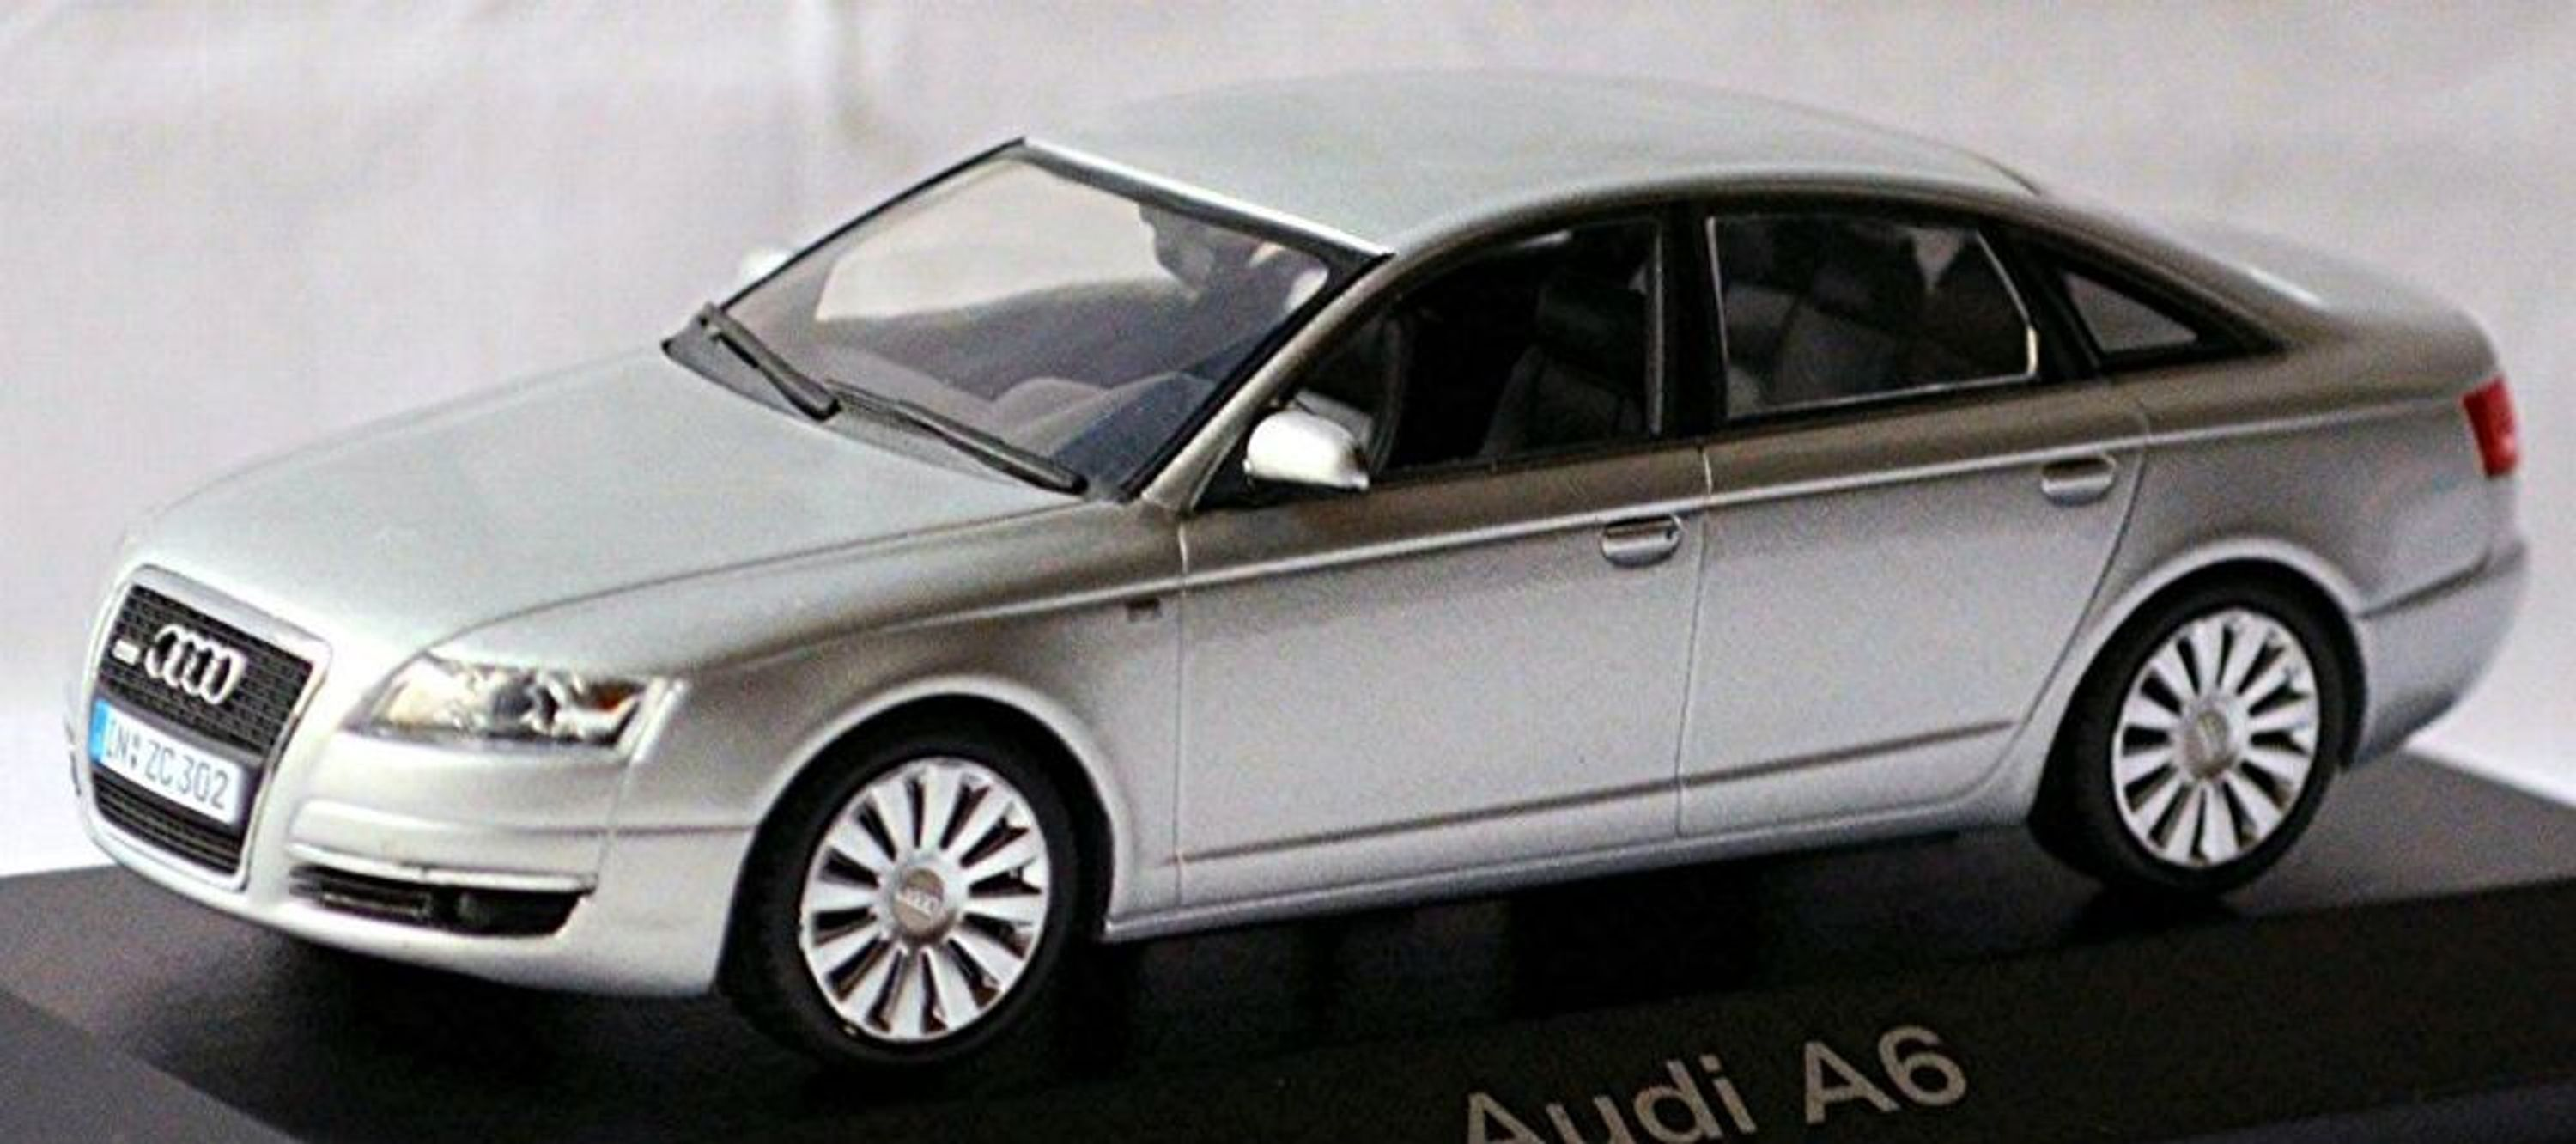 audi a6 limousine c6 typ 4f 2004 08 lichtsilber silver metallic 1 43 ebay. Black Bedroom Furniture Sets. Home Design Ideas